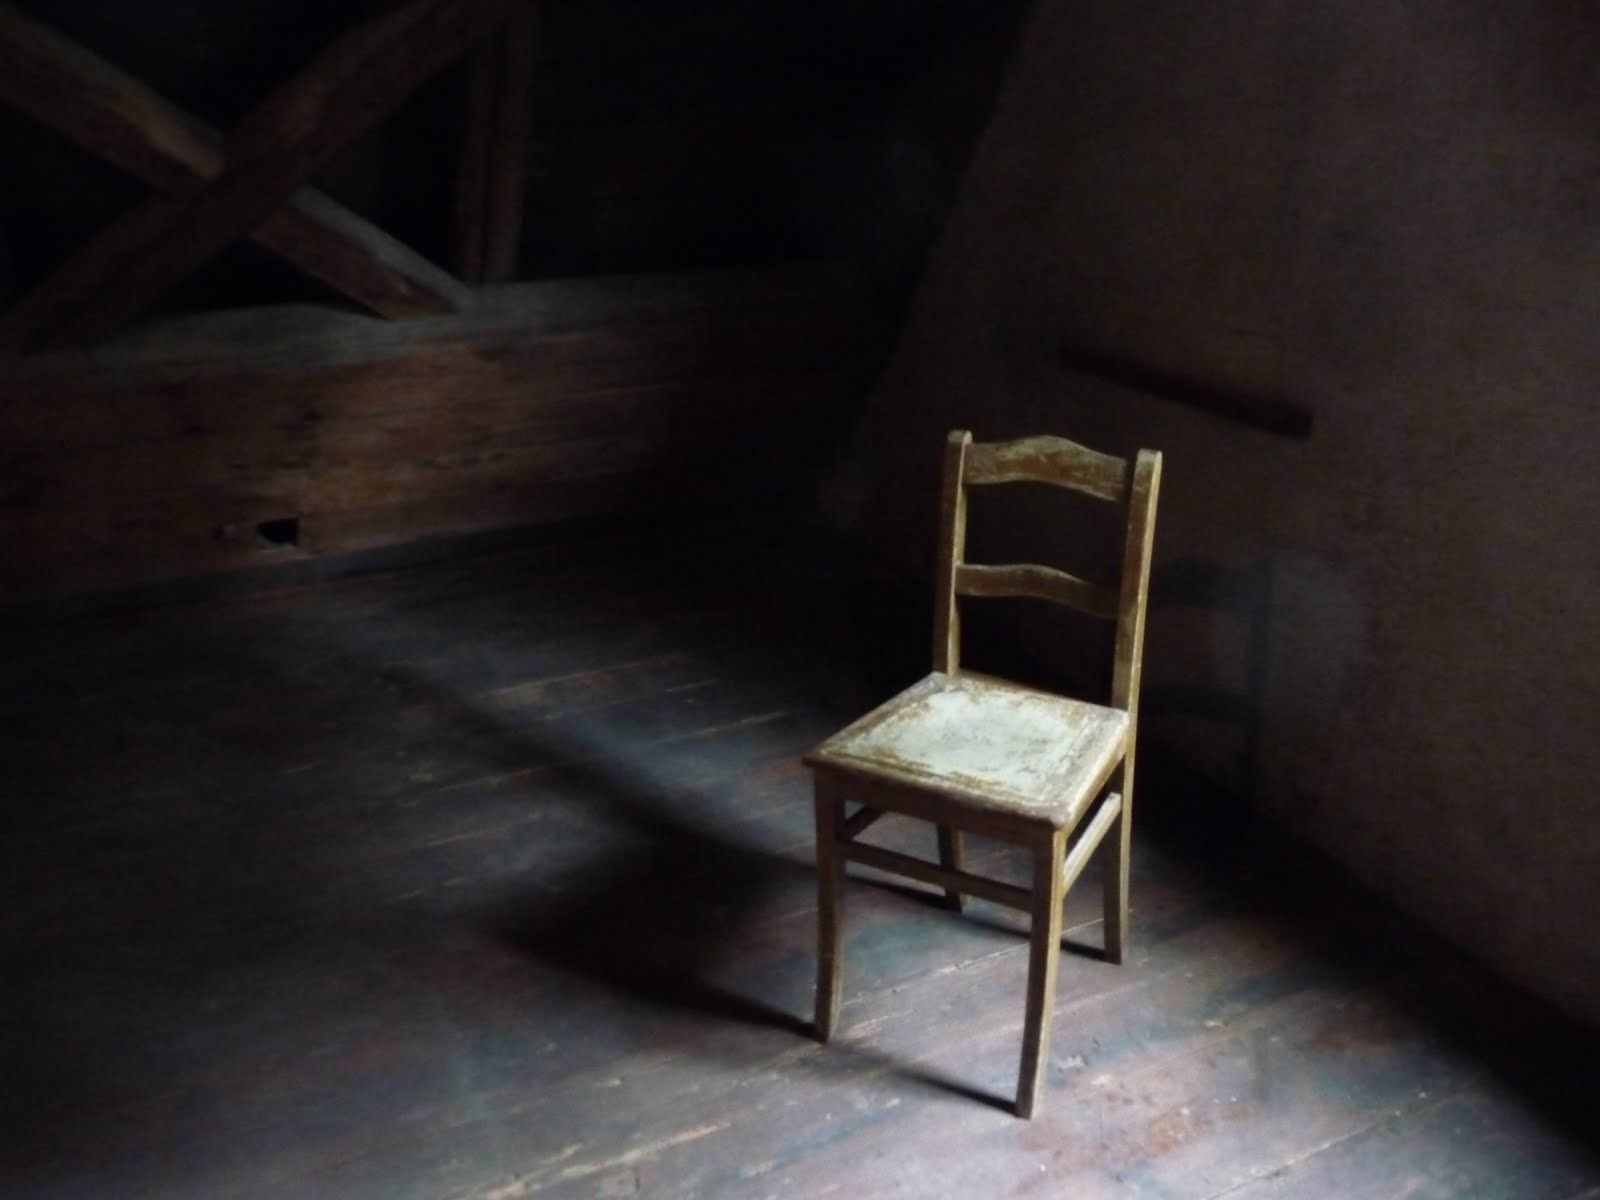 Empty chair in room - I Chose This Picture To Represent Negative Space In Real Life The Chair Shows Positive